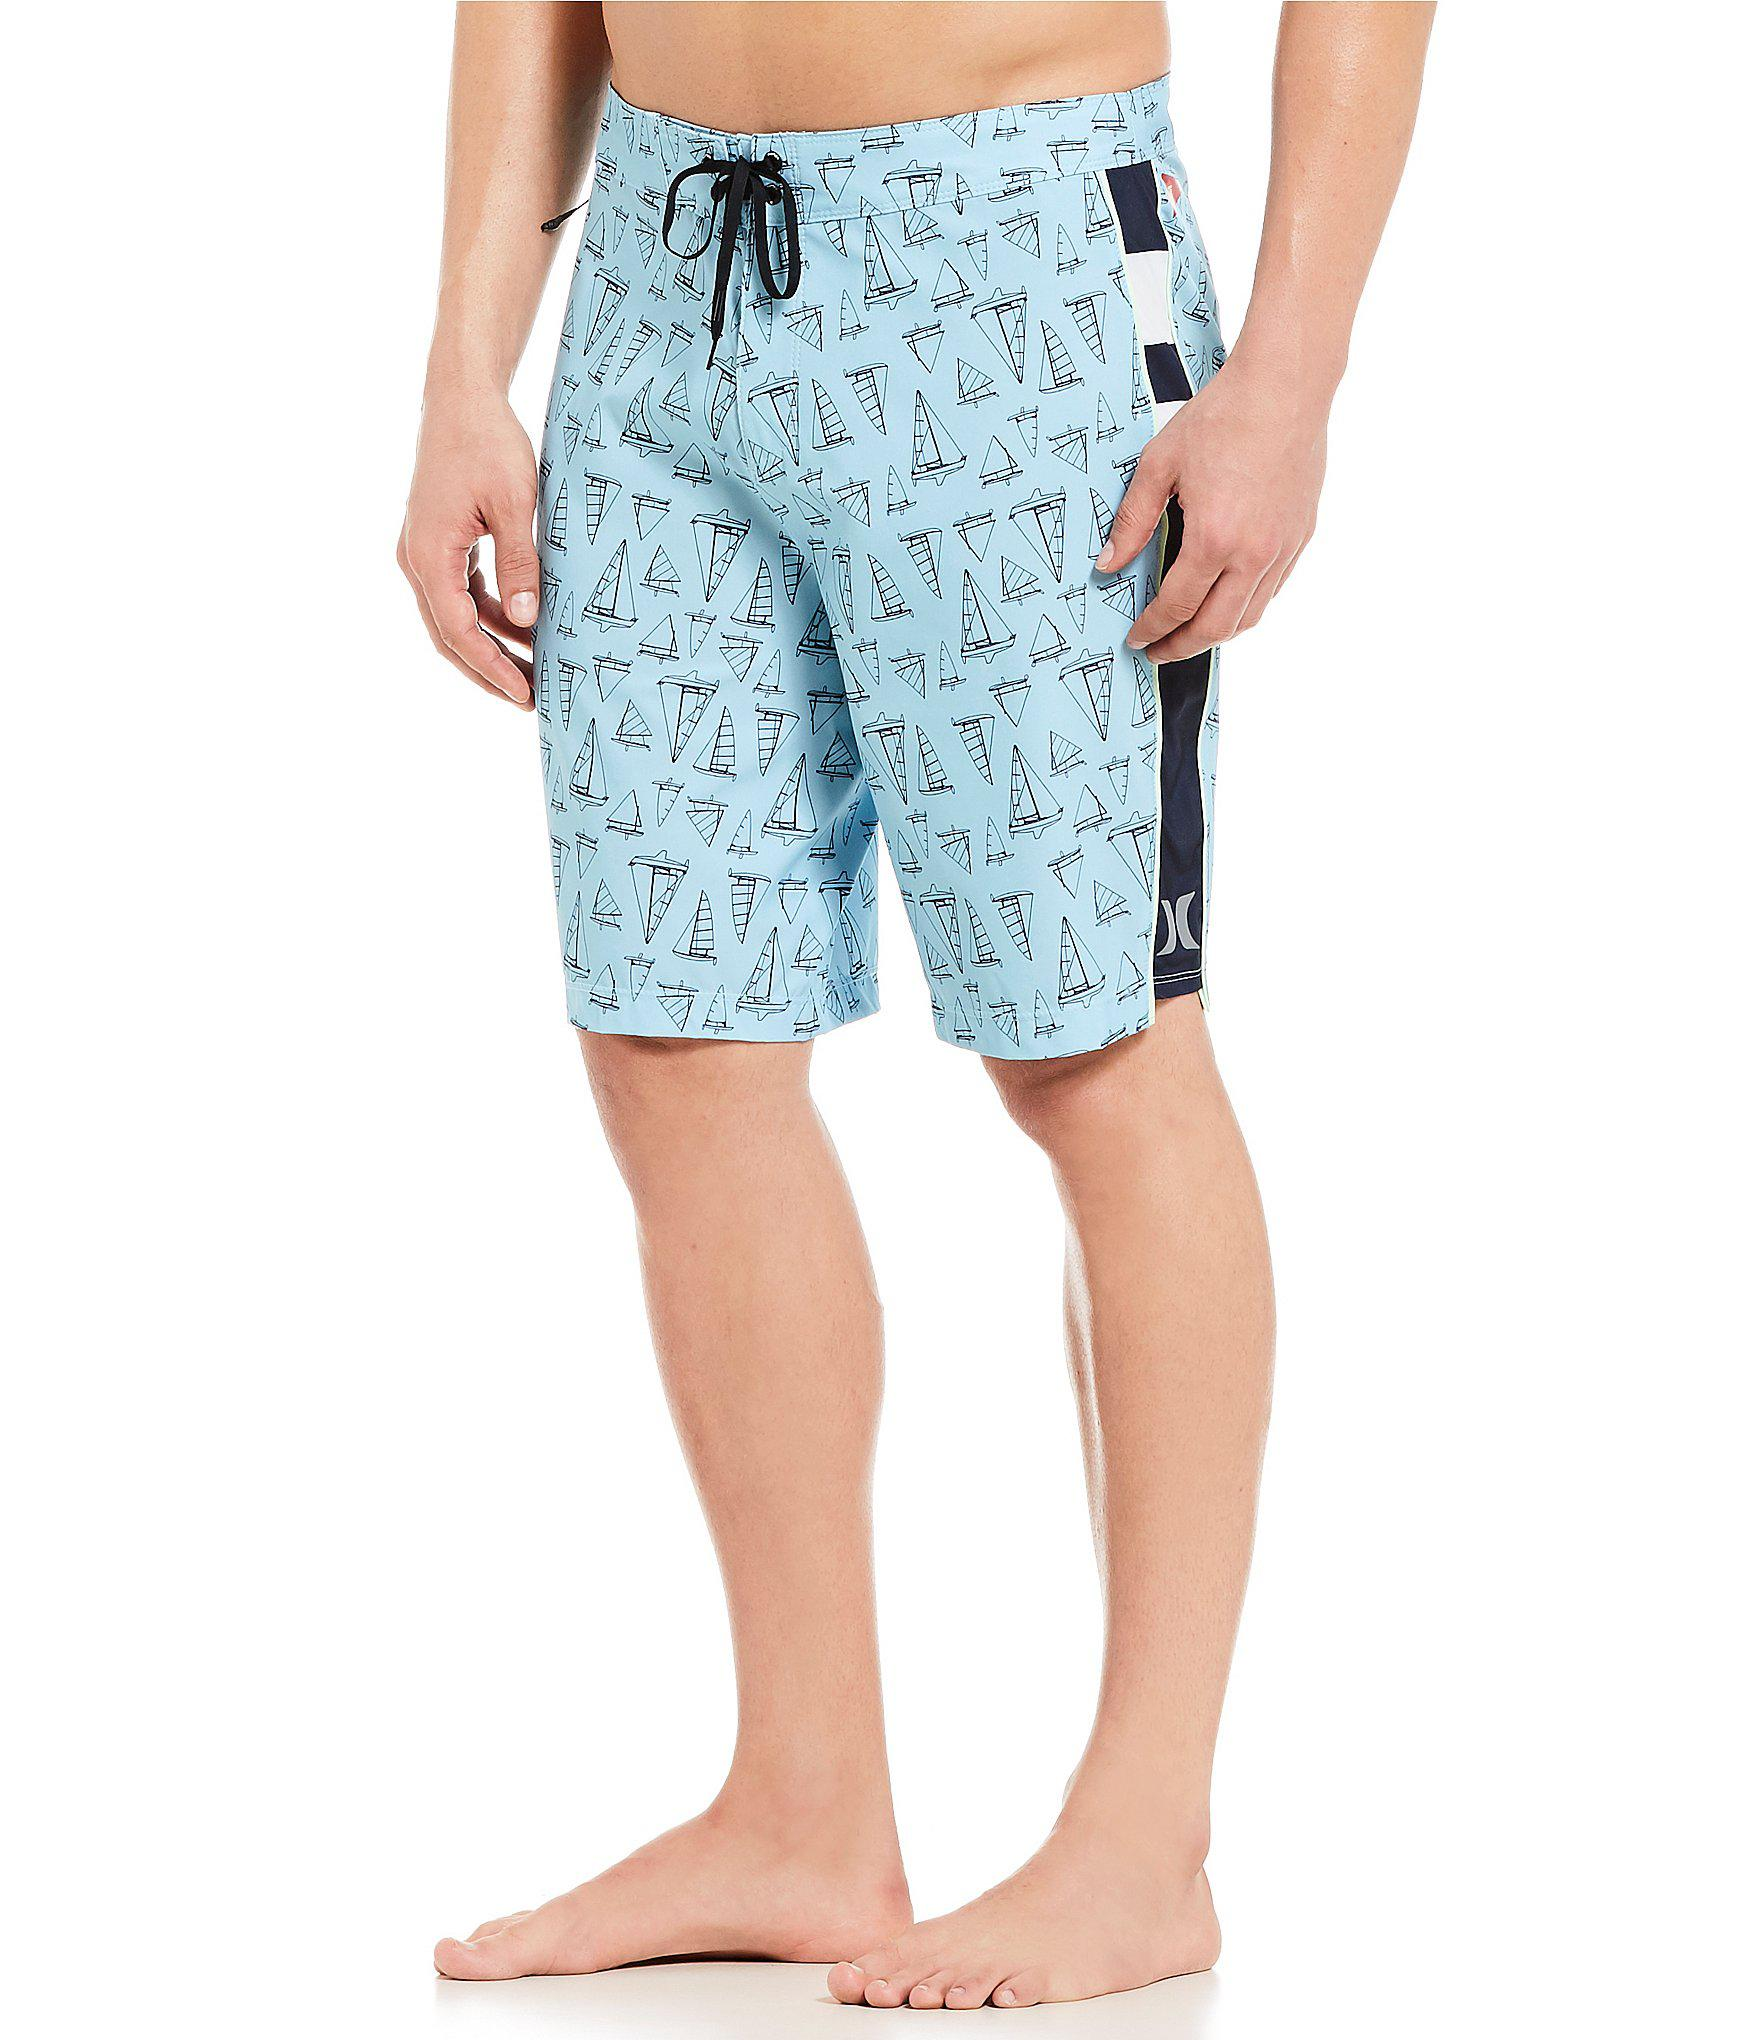 860b9a6791 Hurley Phantom Jjf Iv Maritime Board Shorts in Blue for Men - Lyst